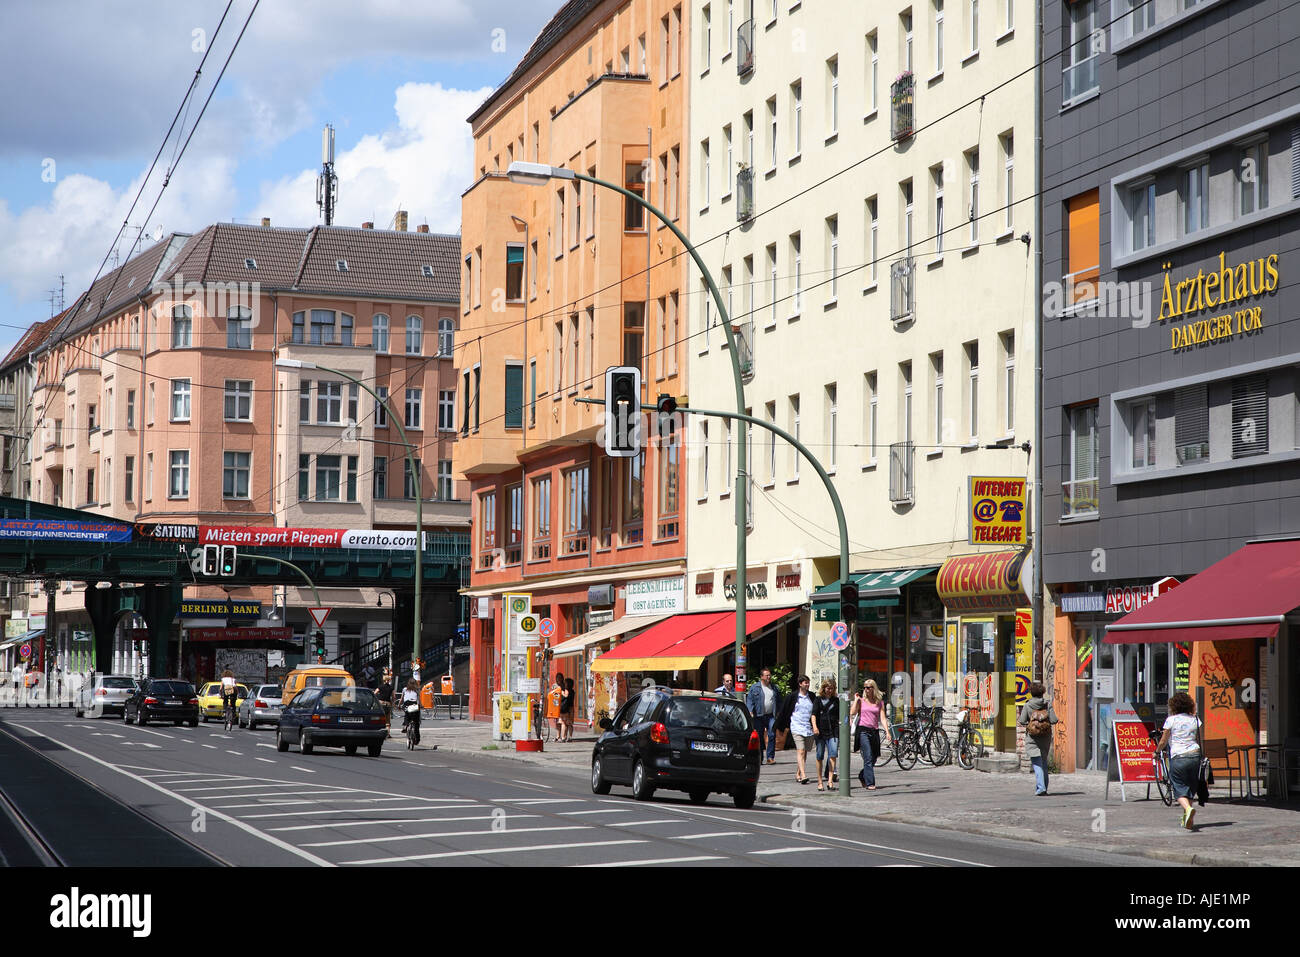 berlin danziger strasse str street prenzlauer berg weissensee stock photo 14708421 alamy. Black Bedroom Furniture Sets. Home Design Ideas